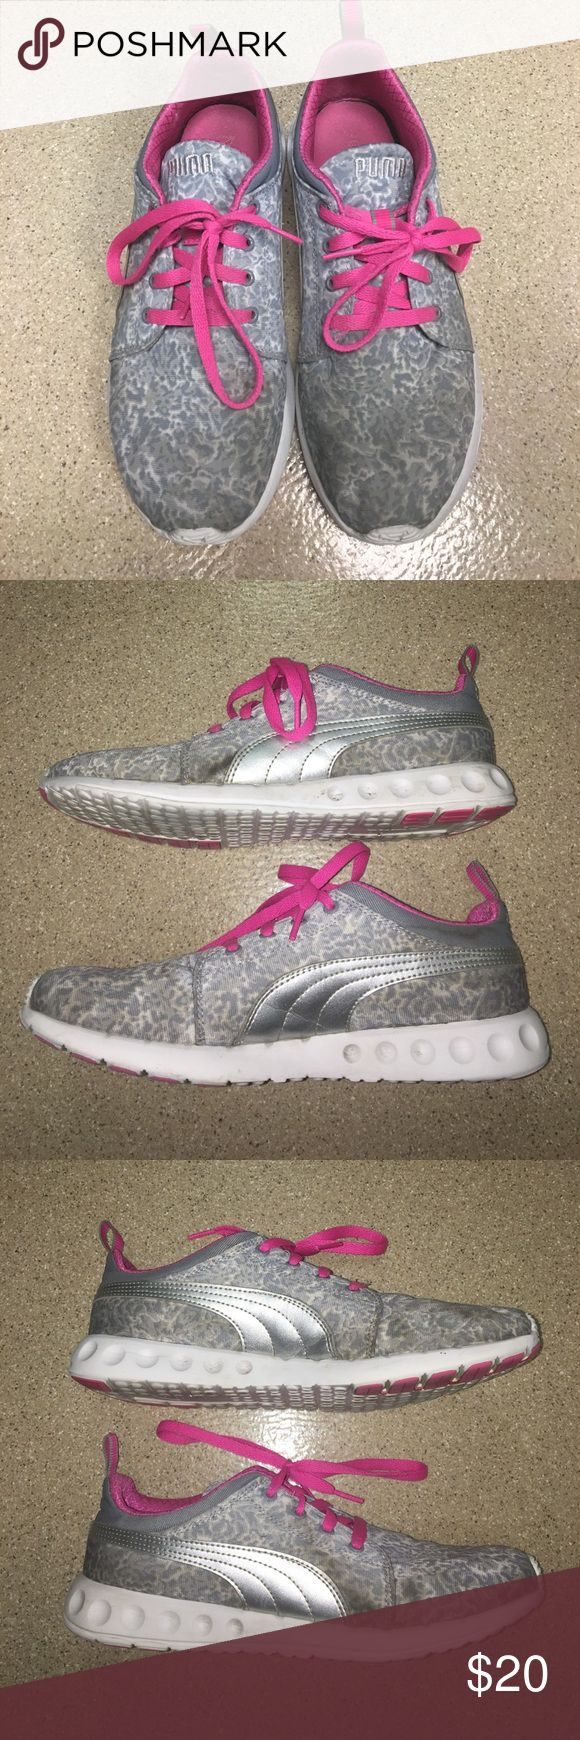 LADIES PUMA RUNNING SHOES Women's size 10 grey/white/pink print running sneakers from PUMA; gently loved; super comfortable, lots of cushion; have lots of life left in these babies! Will run through wash before shipping out! 🛍👍🏼👌🏼💜💕 (Always open to reasonable offers!) Puma Shoes Athletic Shoes